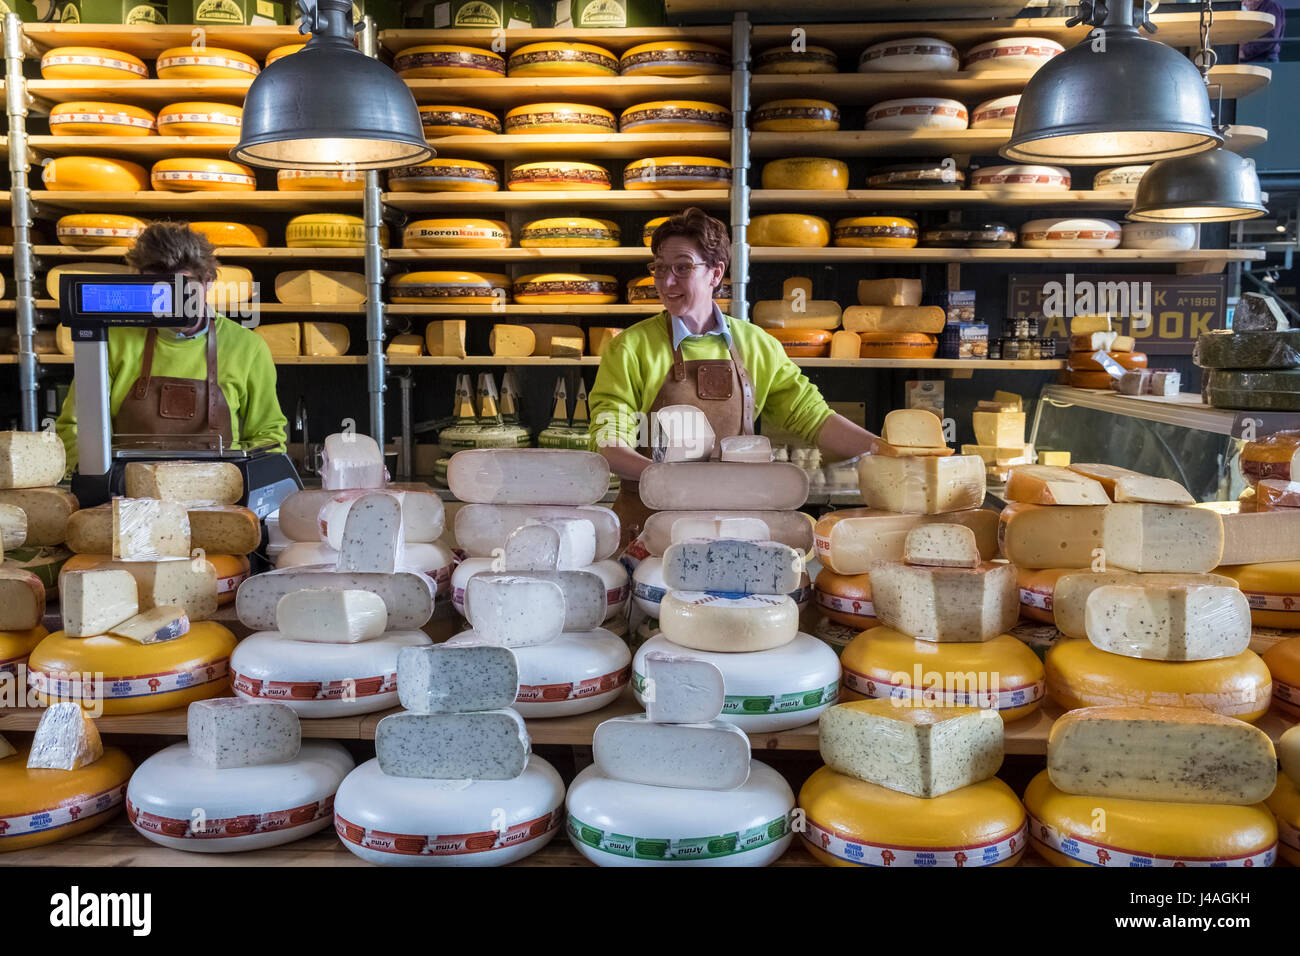 Cheese trader inside Markthal food market, Nieuwstraat, Rotterdam, The Netherlands Stock Photo